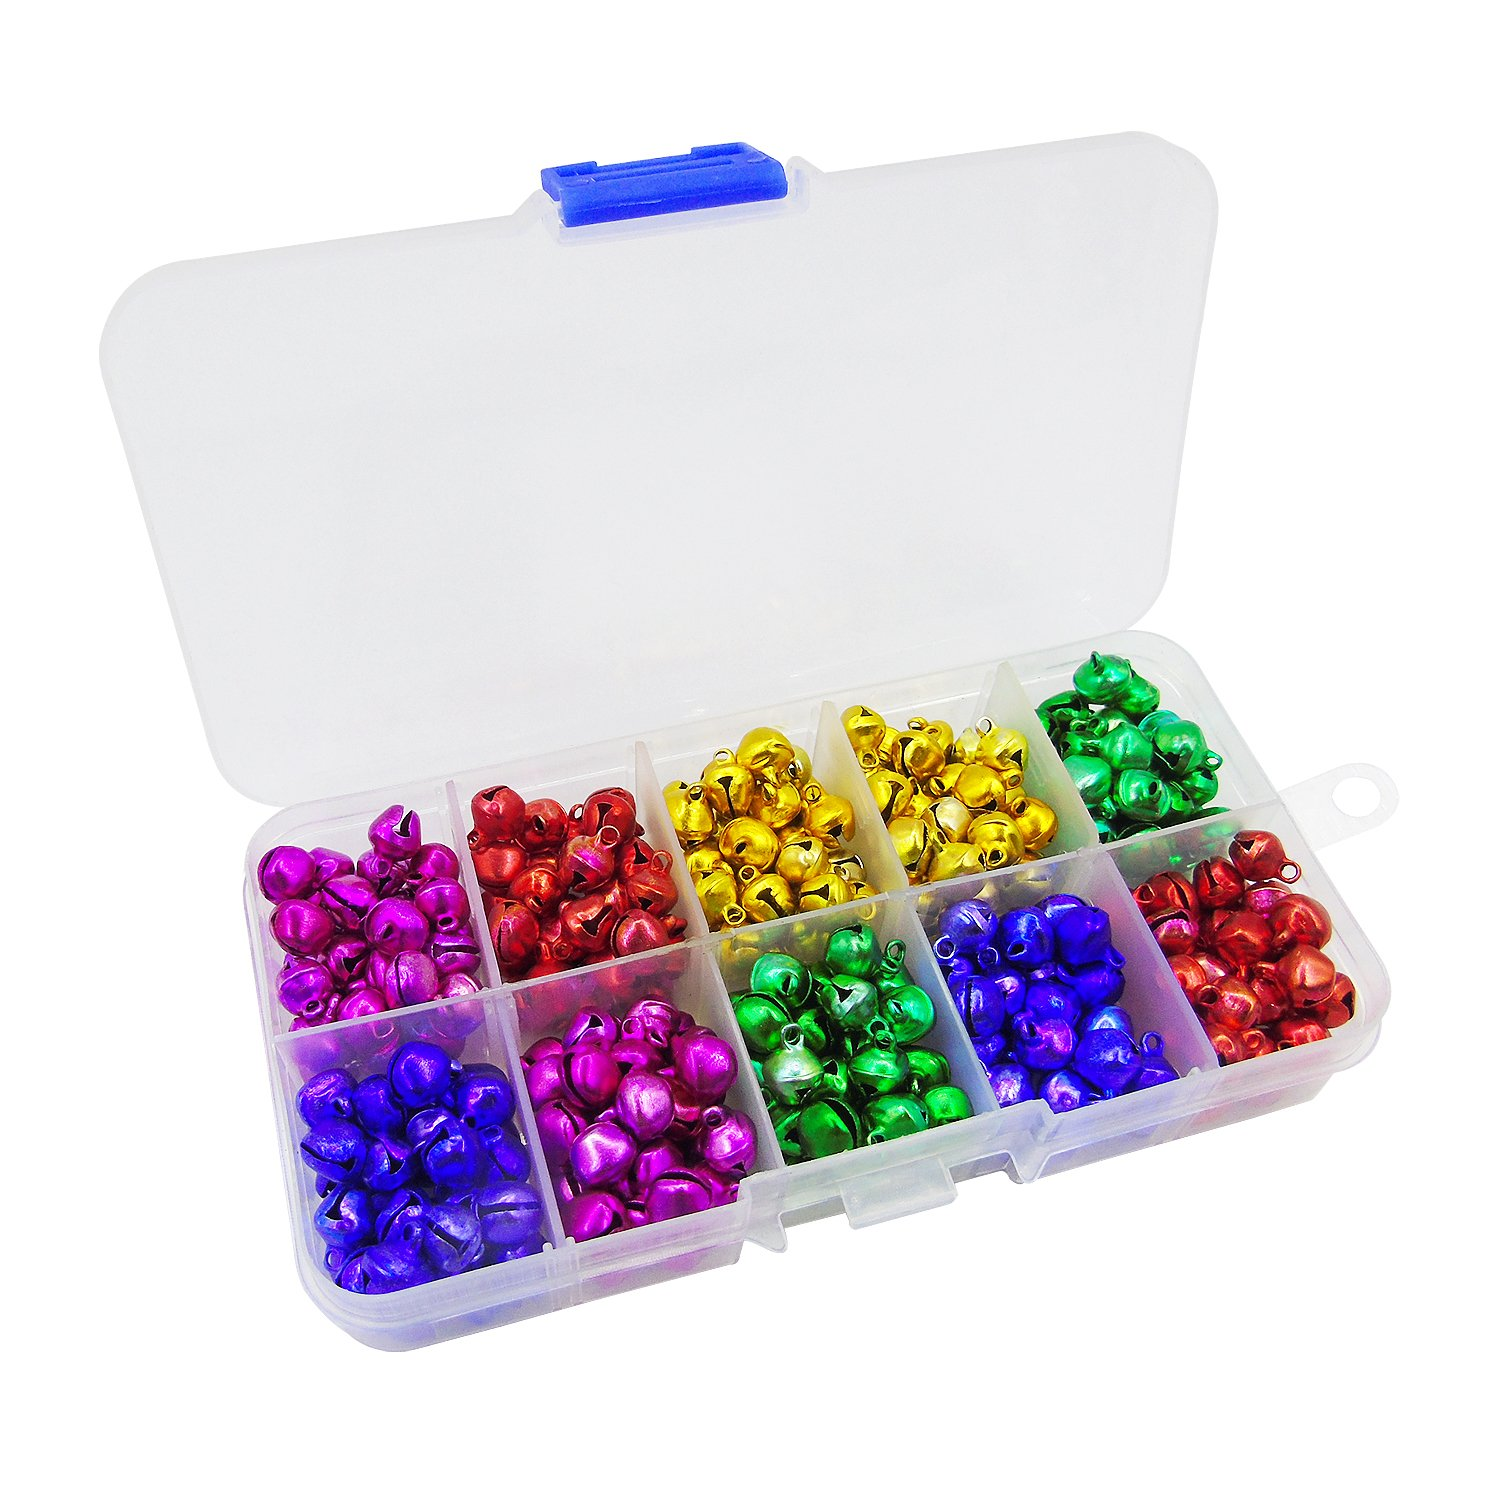 Grosun 300pcs Colored Jingle Bells Small Bell Mini Bells Bulk with Clear Box for Halloween Christmas Wedding Decoration and Jewelry Making